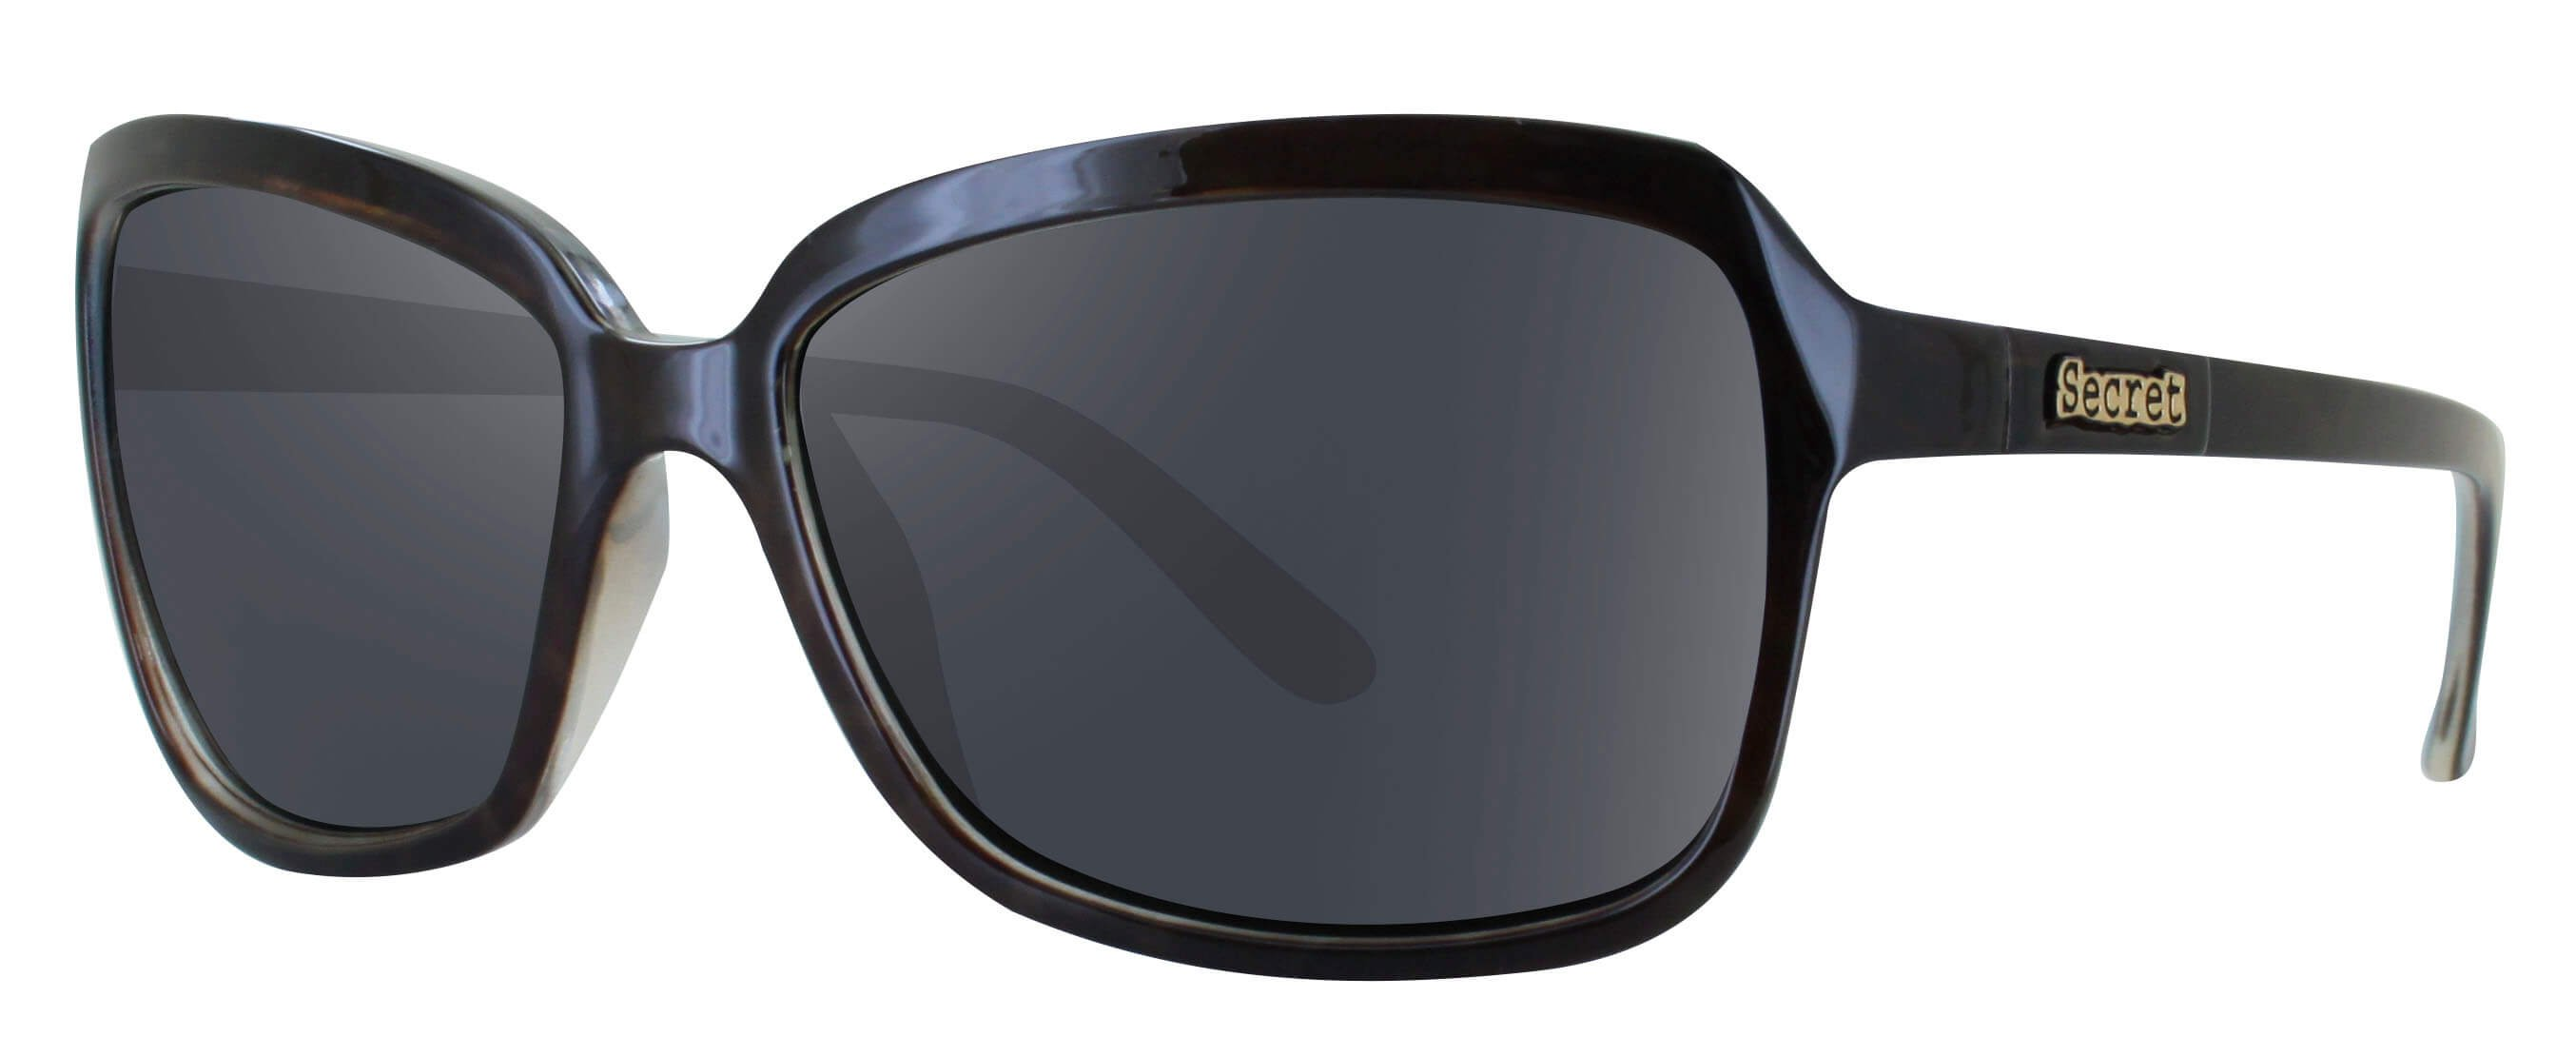 ÓC SECRET PETIT GLOSS BLACK / POLARIZED GRAY